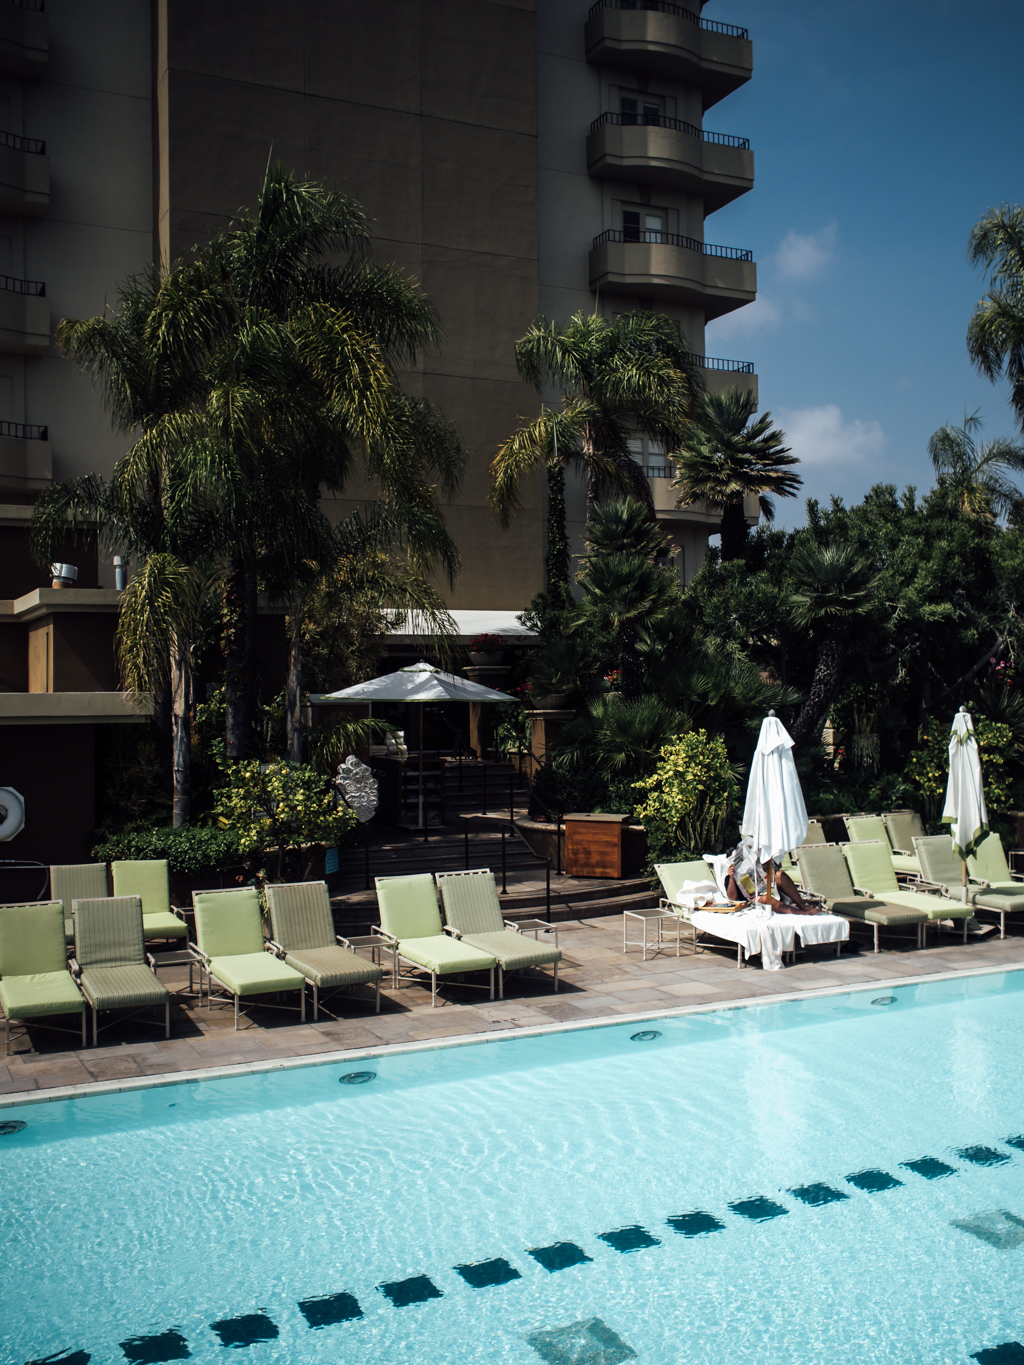 Happy Place - Poolside at the Four Seasons Beverly Hills